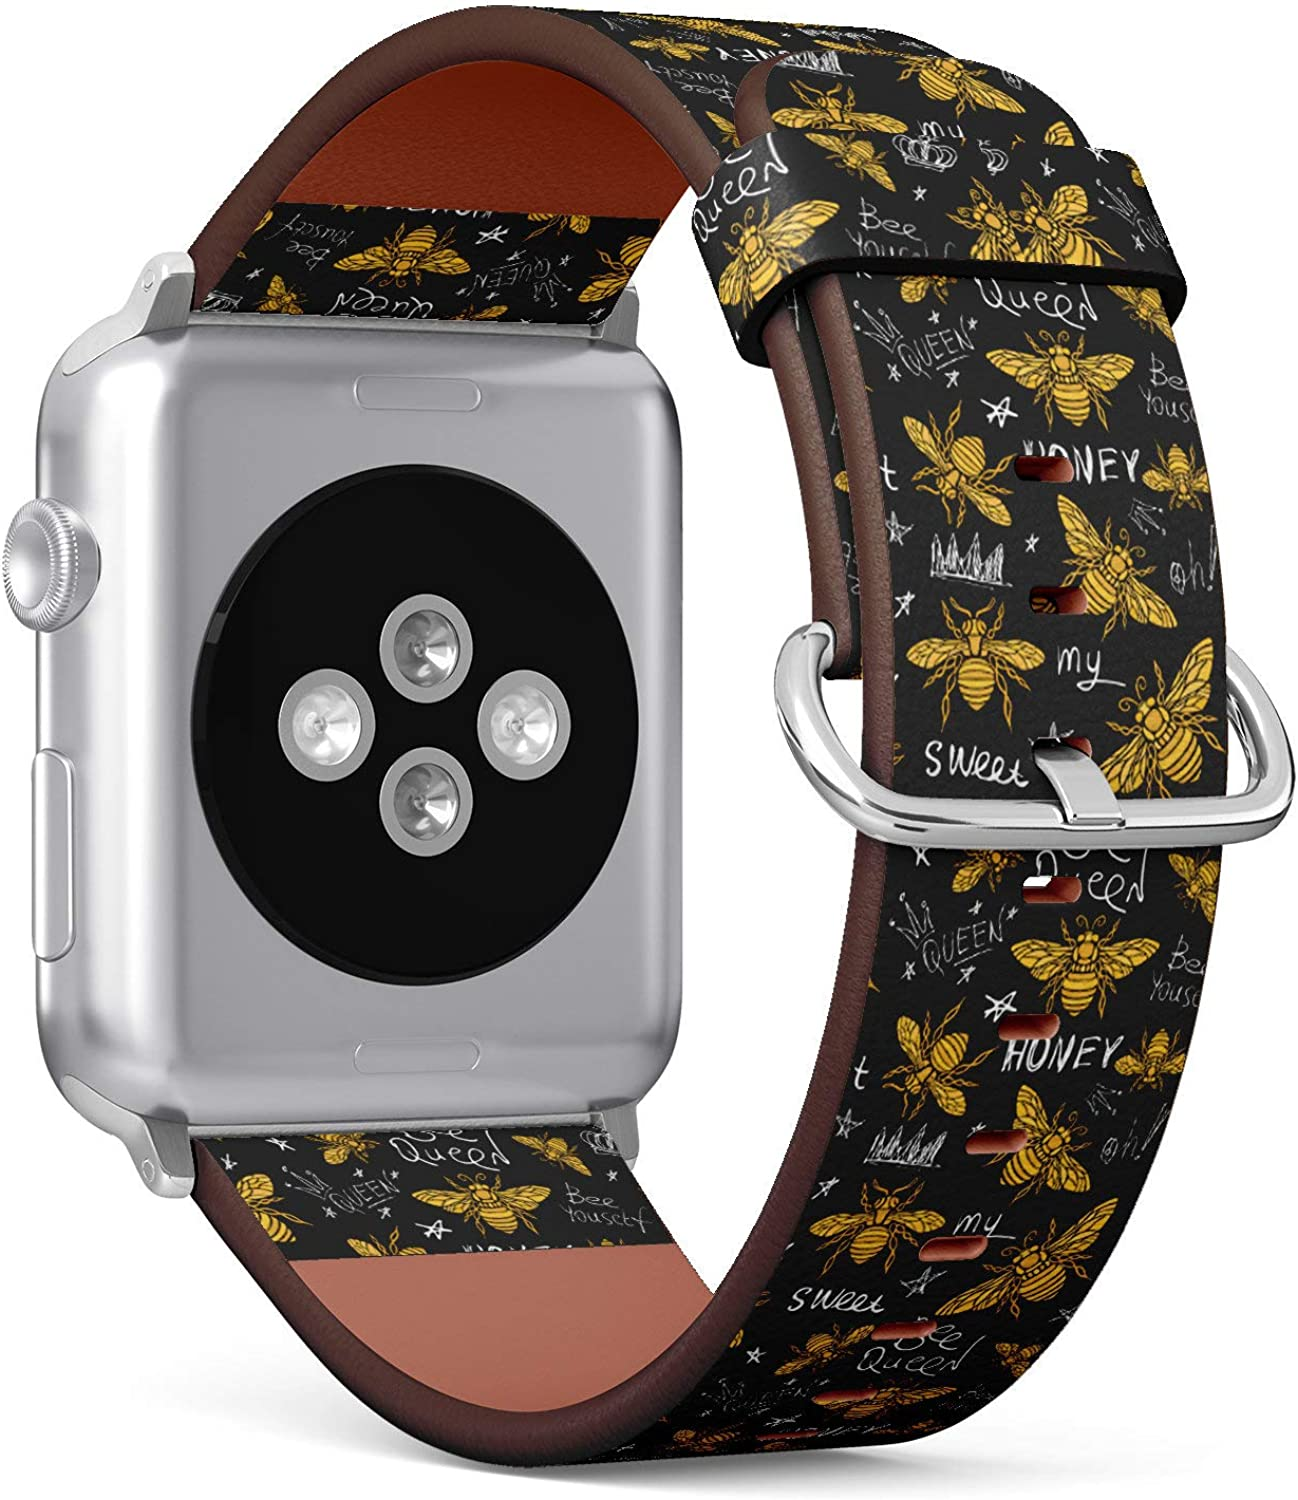 (Honey bee Golden Pattern Queen Crown Textile) Patterned Leather Wristband Strap for Apple Watch Series 4/3/2/1 gen,Replacement for iWatch 38mm / 40mm Bands